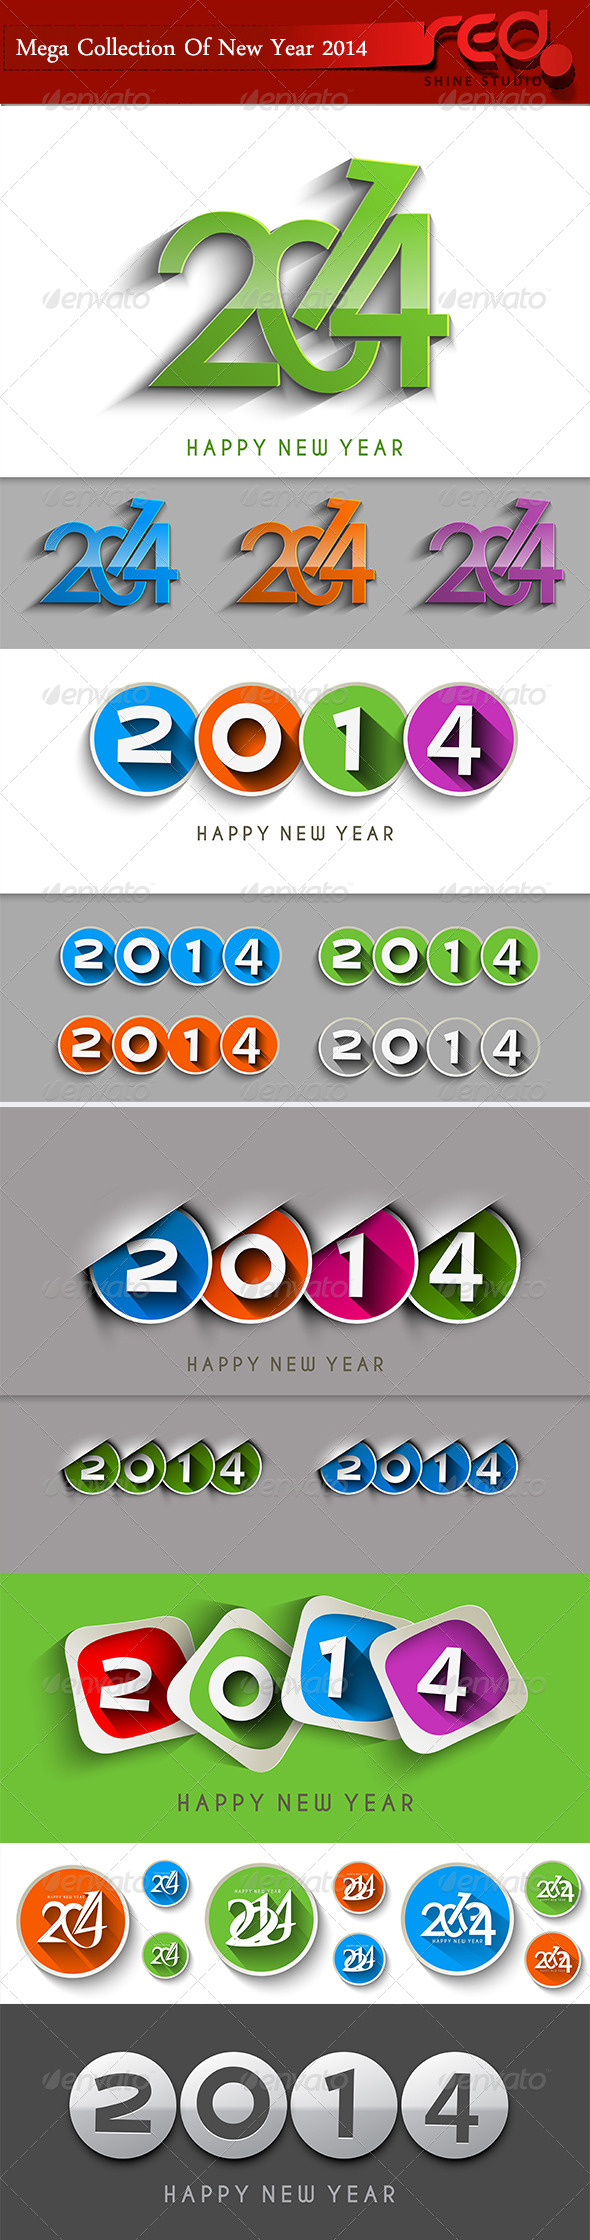 GraphicRiver Happy New Year 2014 6336208